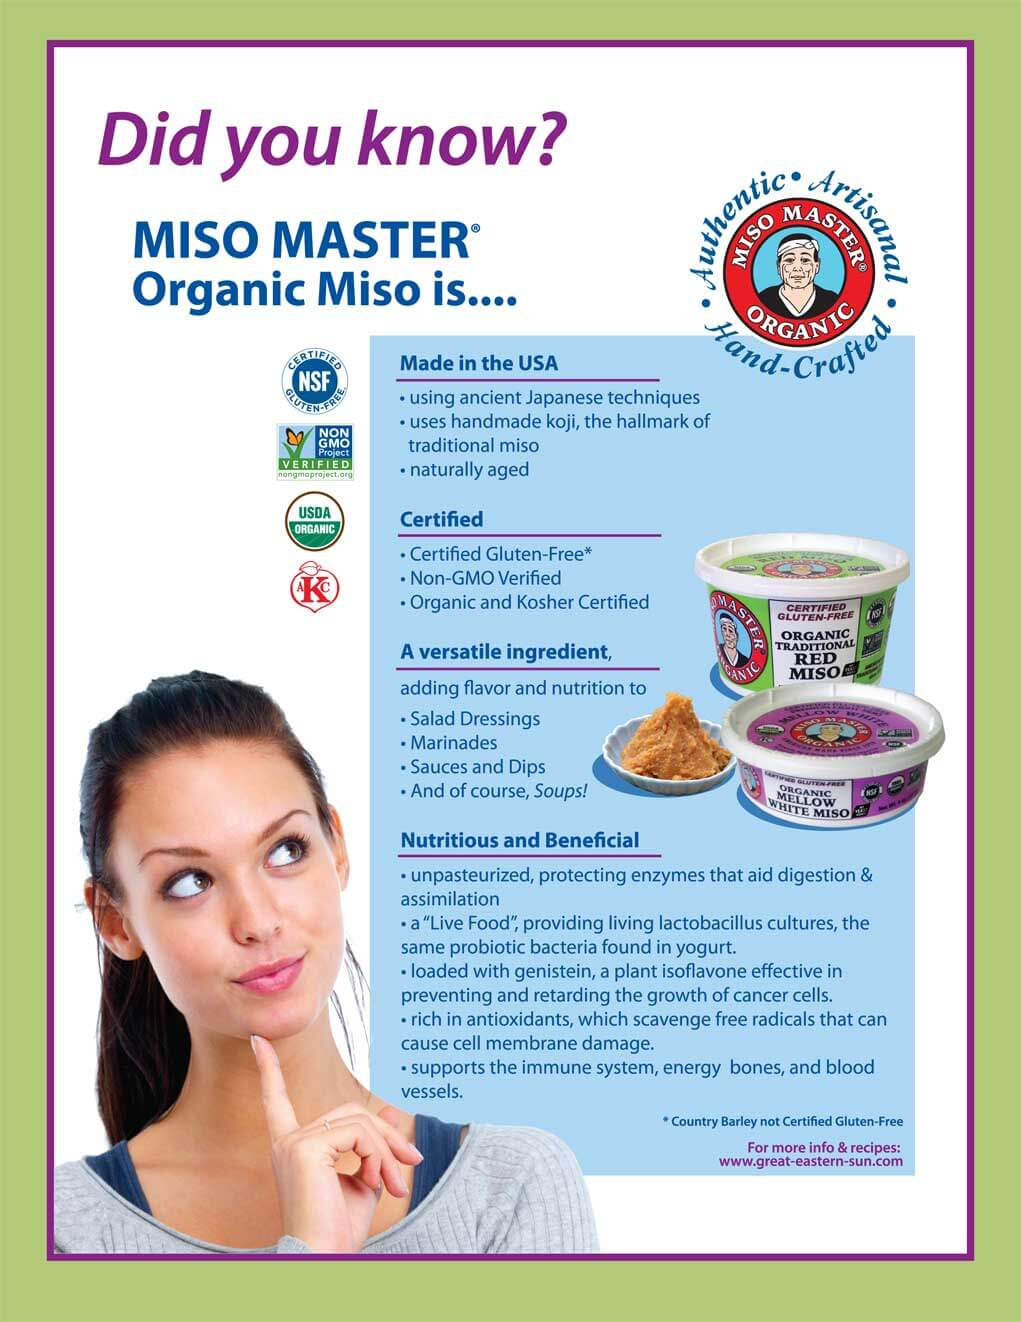 miso-master-did-you-know-flyer